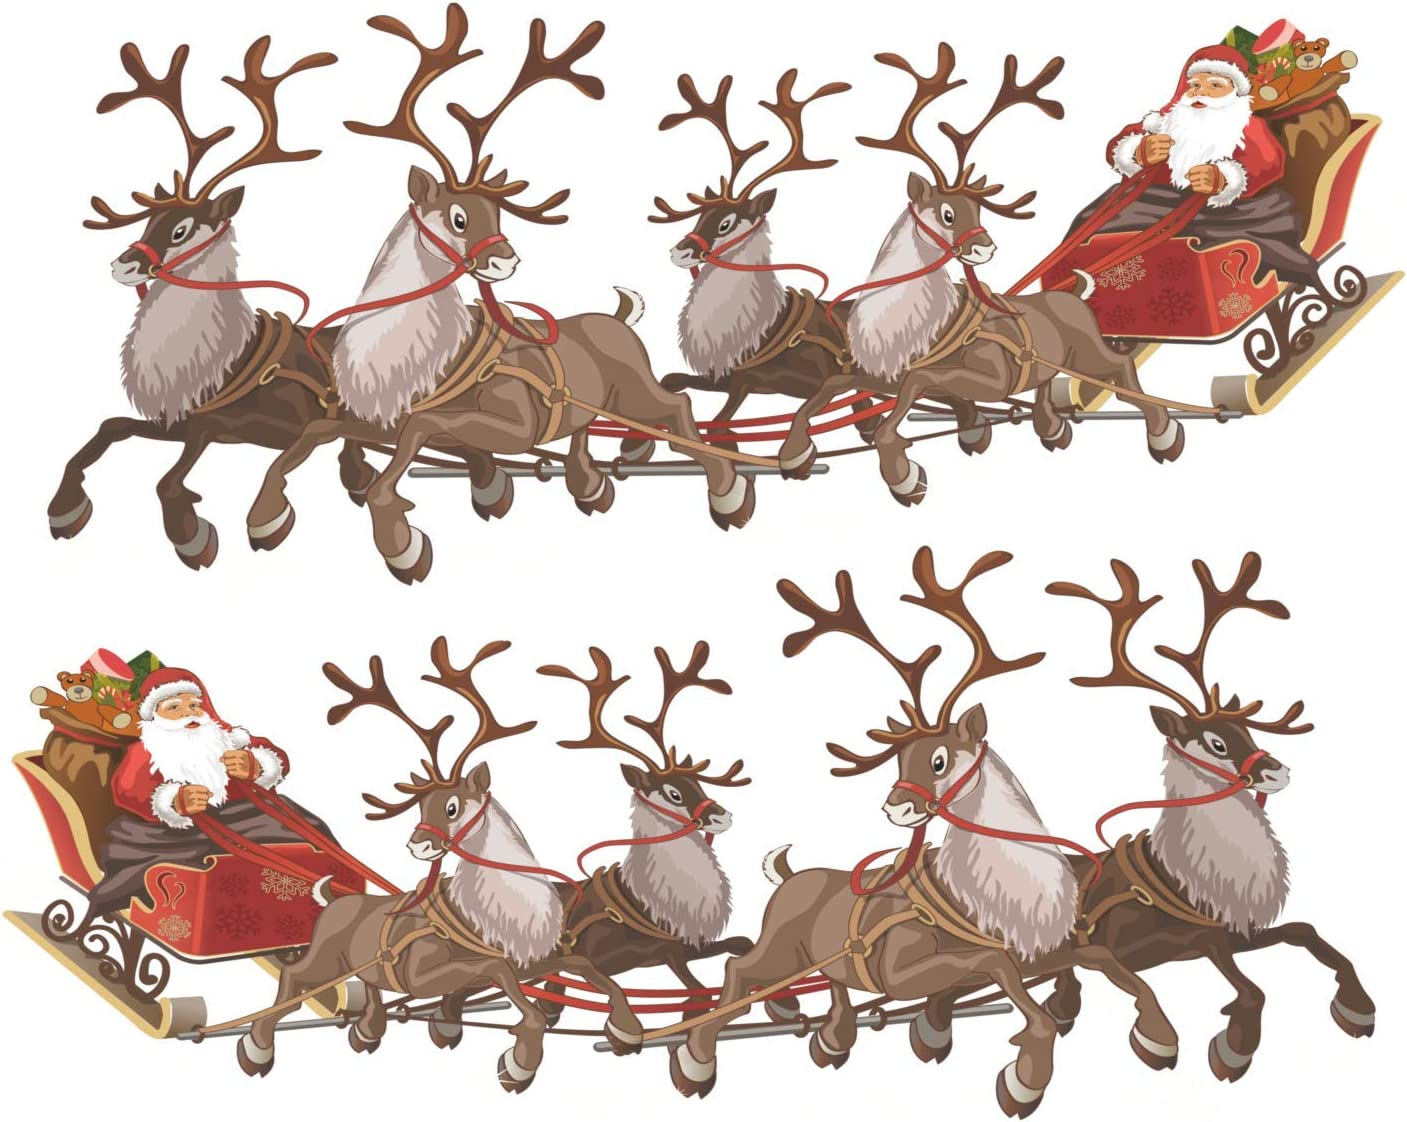 Christmas Window Clings – Two Santa Sleigh and Reindeers Christmas Window Decorations - Reusable Non-Adhesive Holiday Window and Door Décor - Small x 2